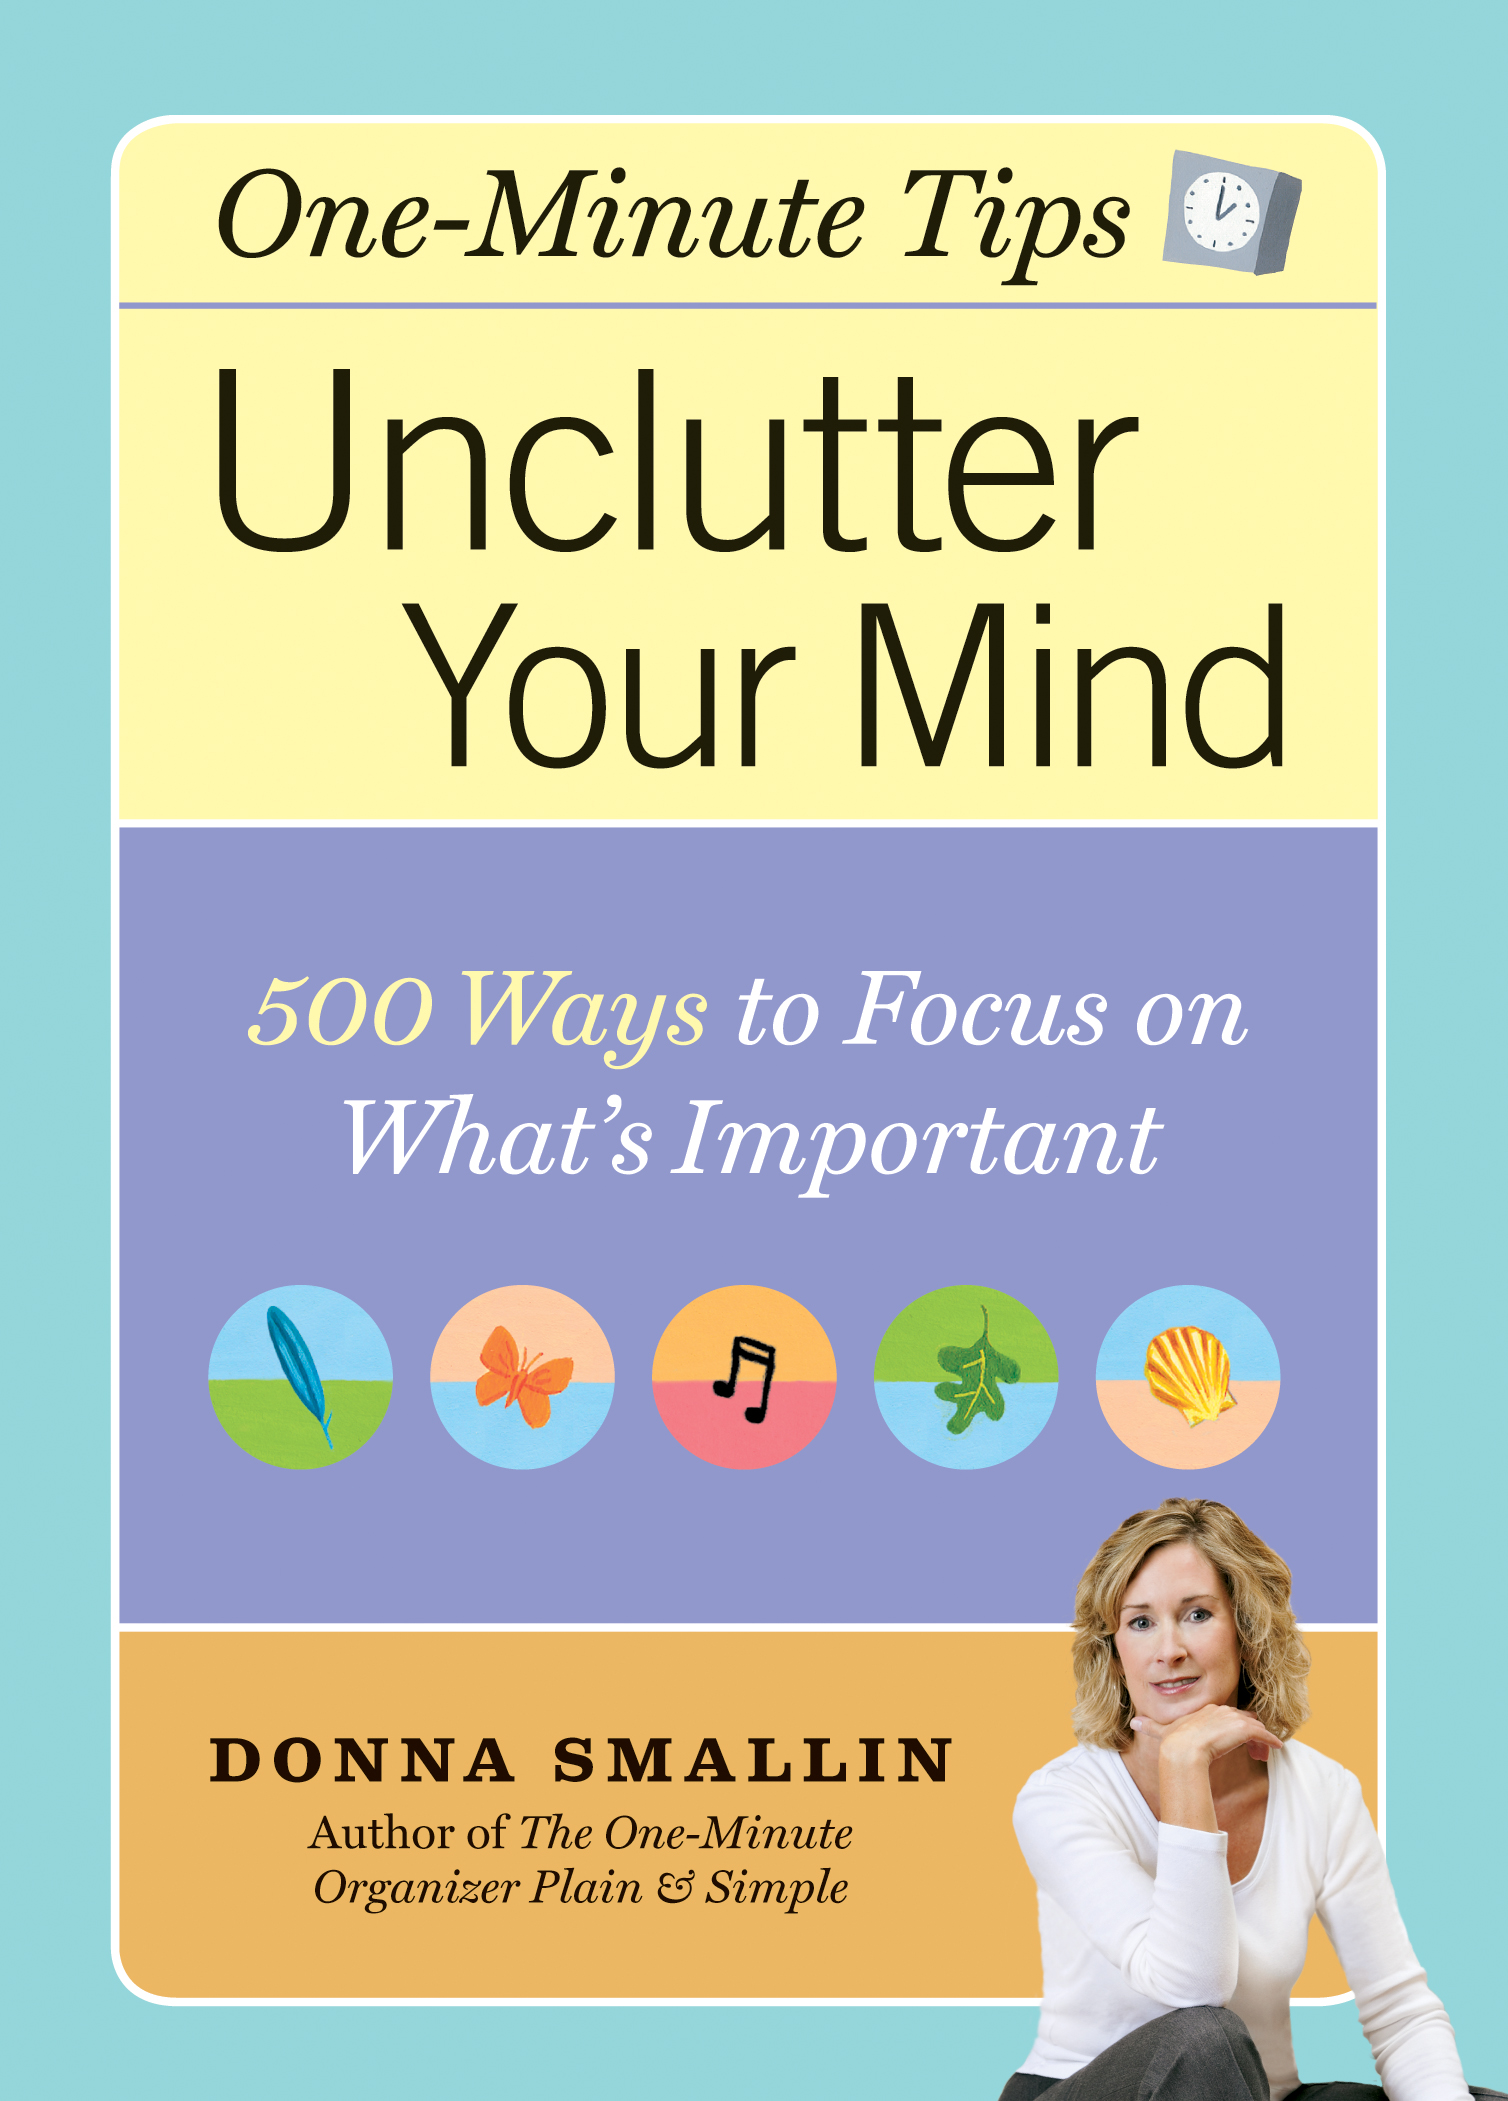 Unclutter Your Mind 500 Ways to Focus on What's Important - Donna Smallin